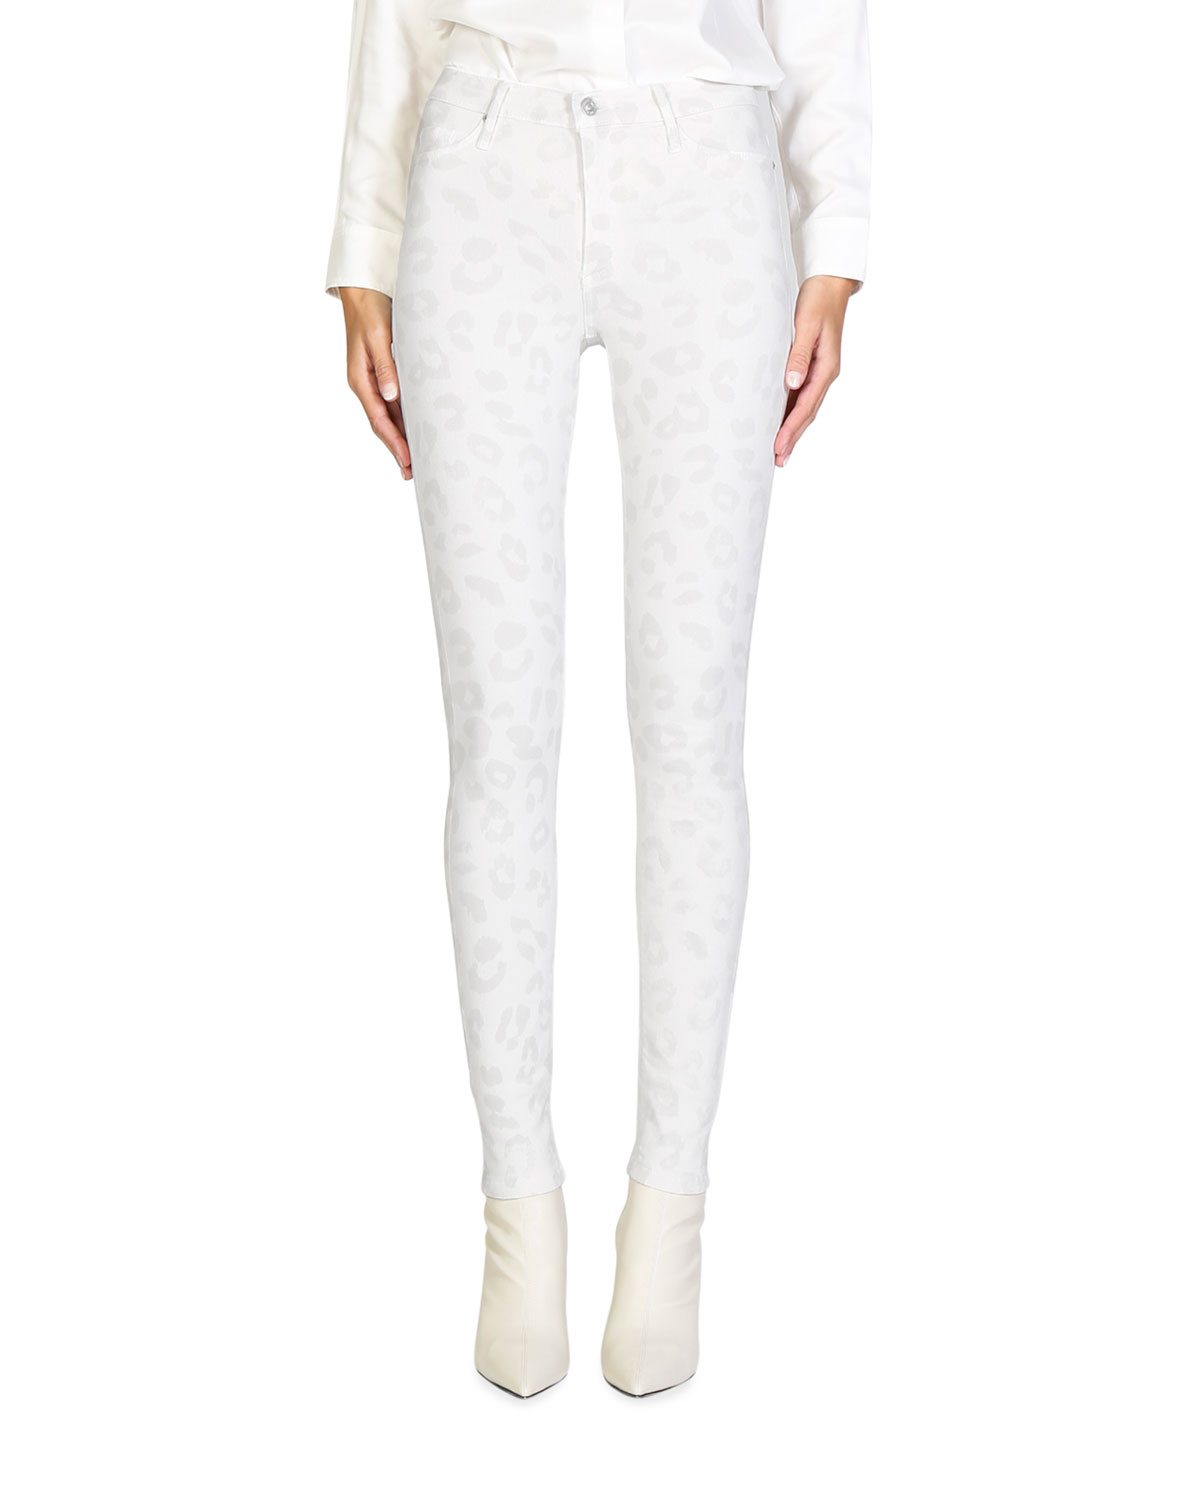 Giselle High-Rise Skinny Jeans